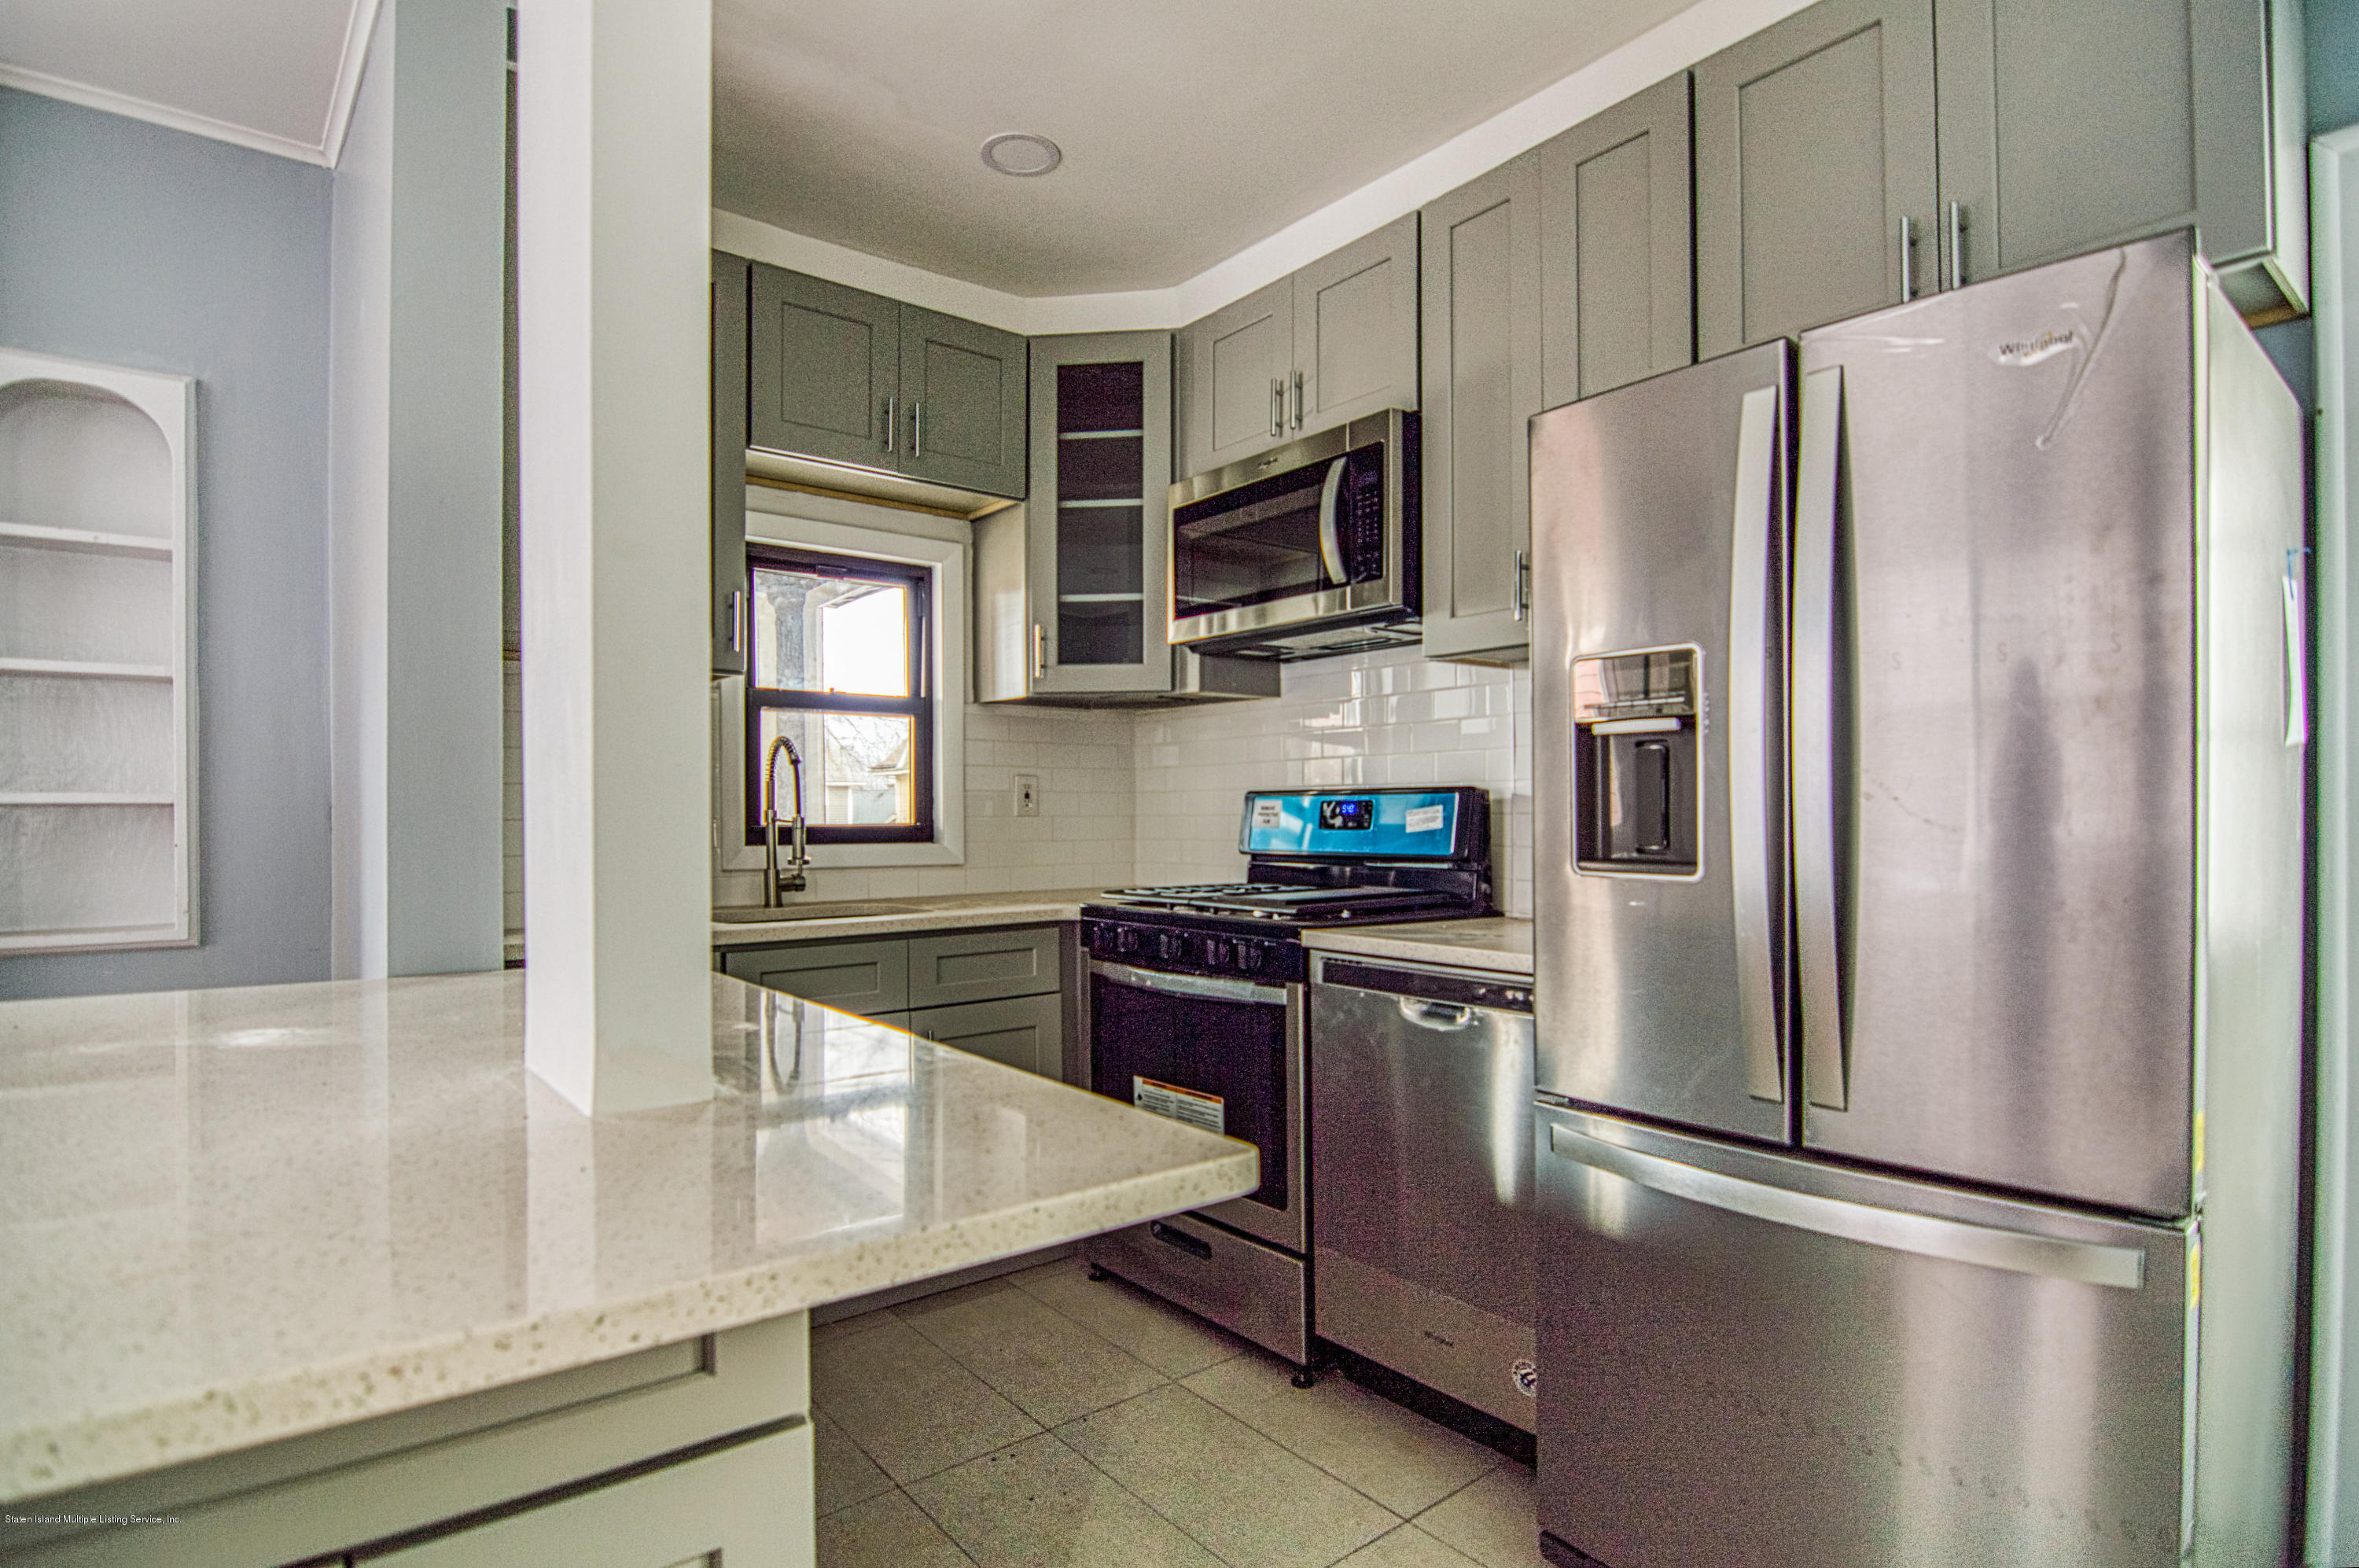 Single Family - Detached 54 Quinlan Avenue  Staten Island, NY 10314, MLS-1135997-8